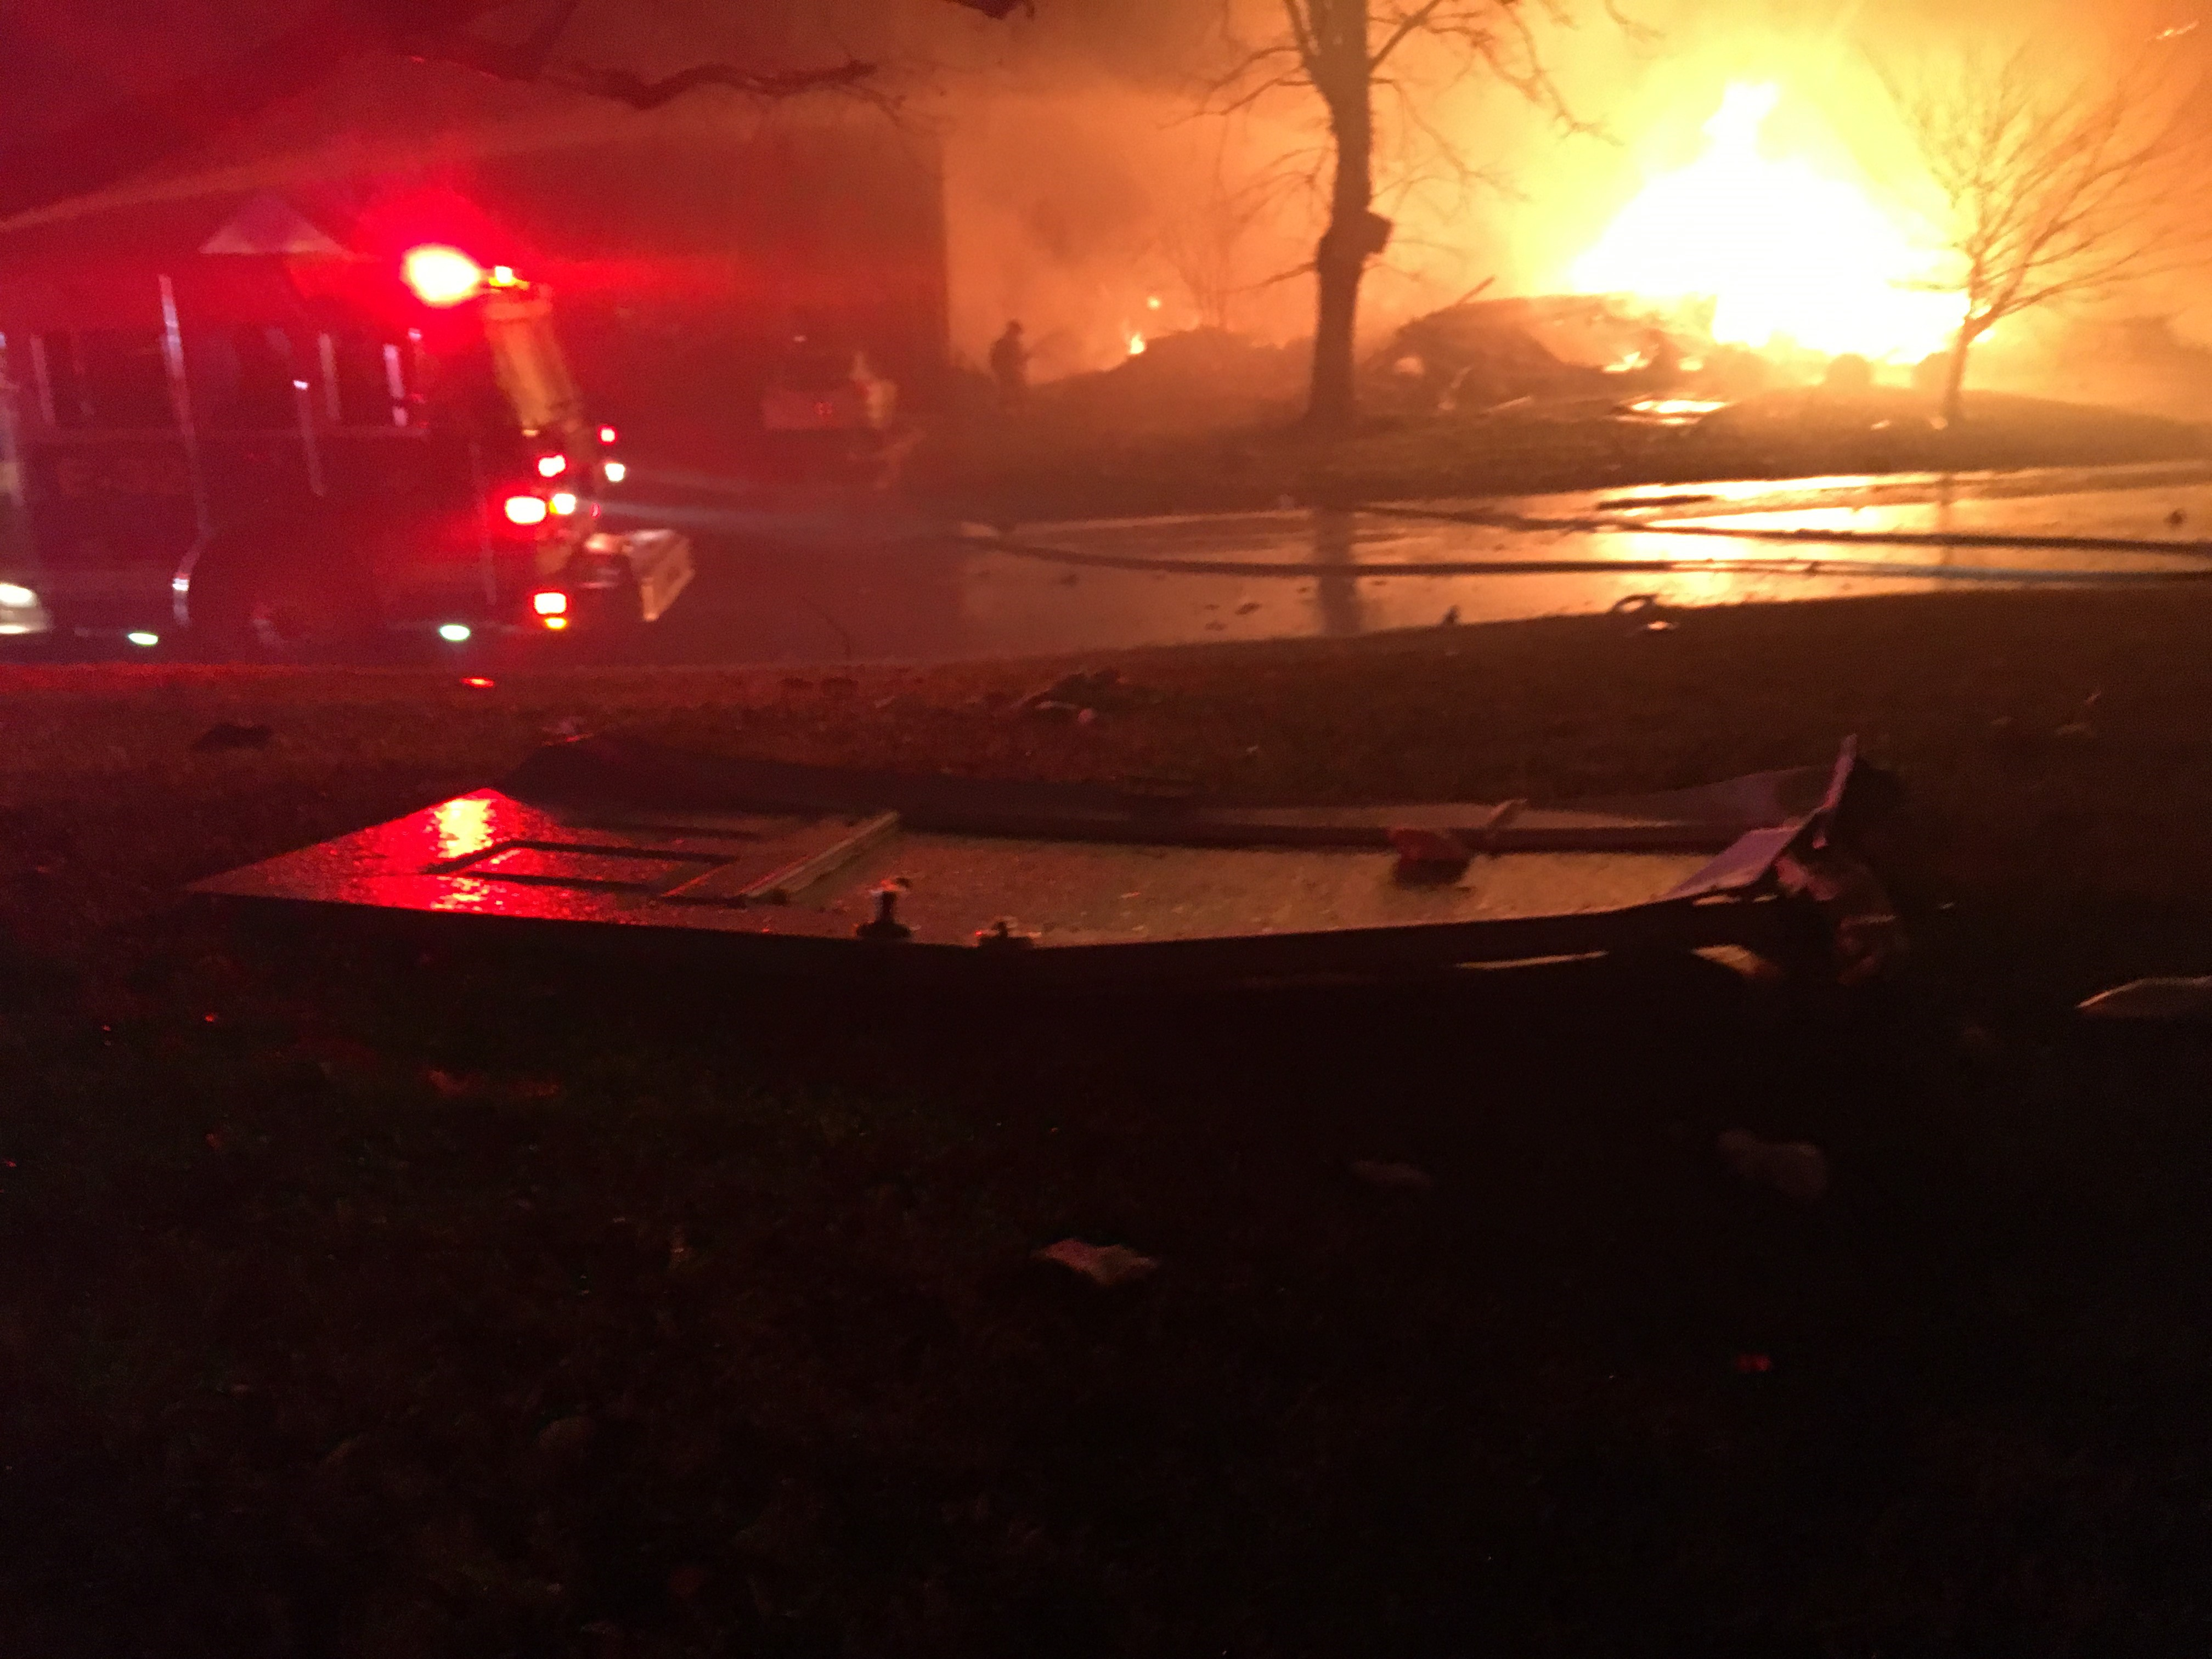 Person killed after reported house explosion in Kettering, coroner says (WKEF/WRGT)<p></p>